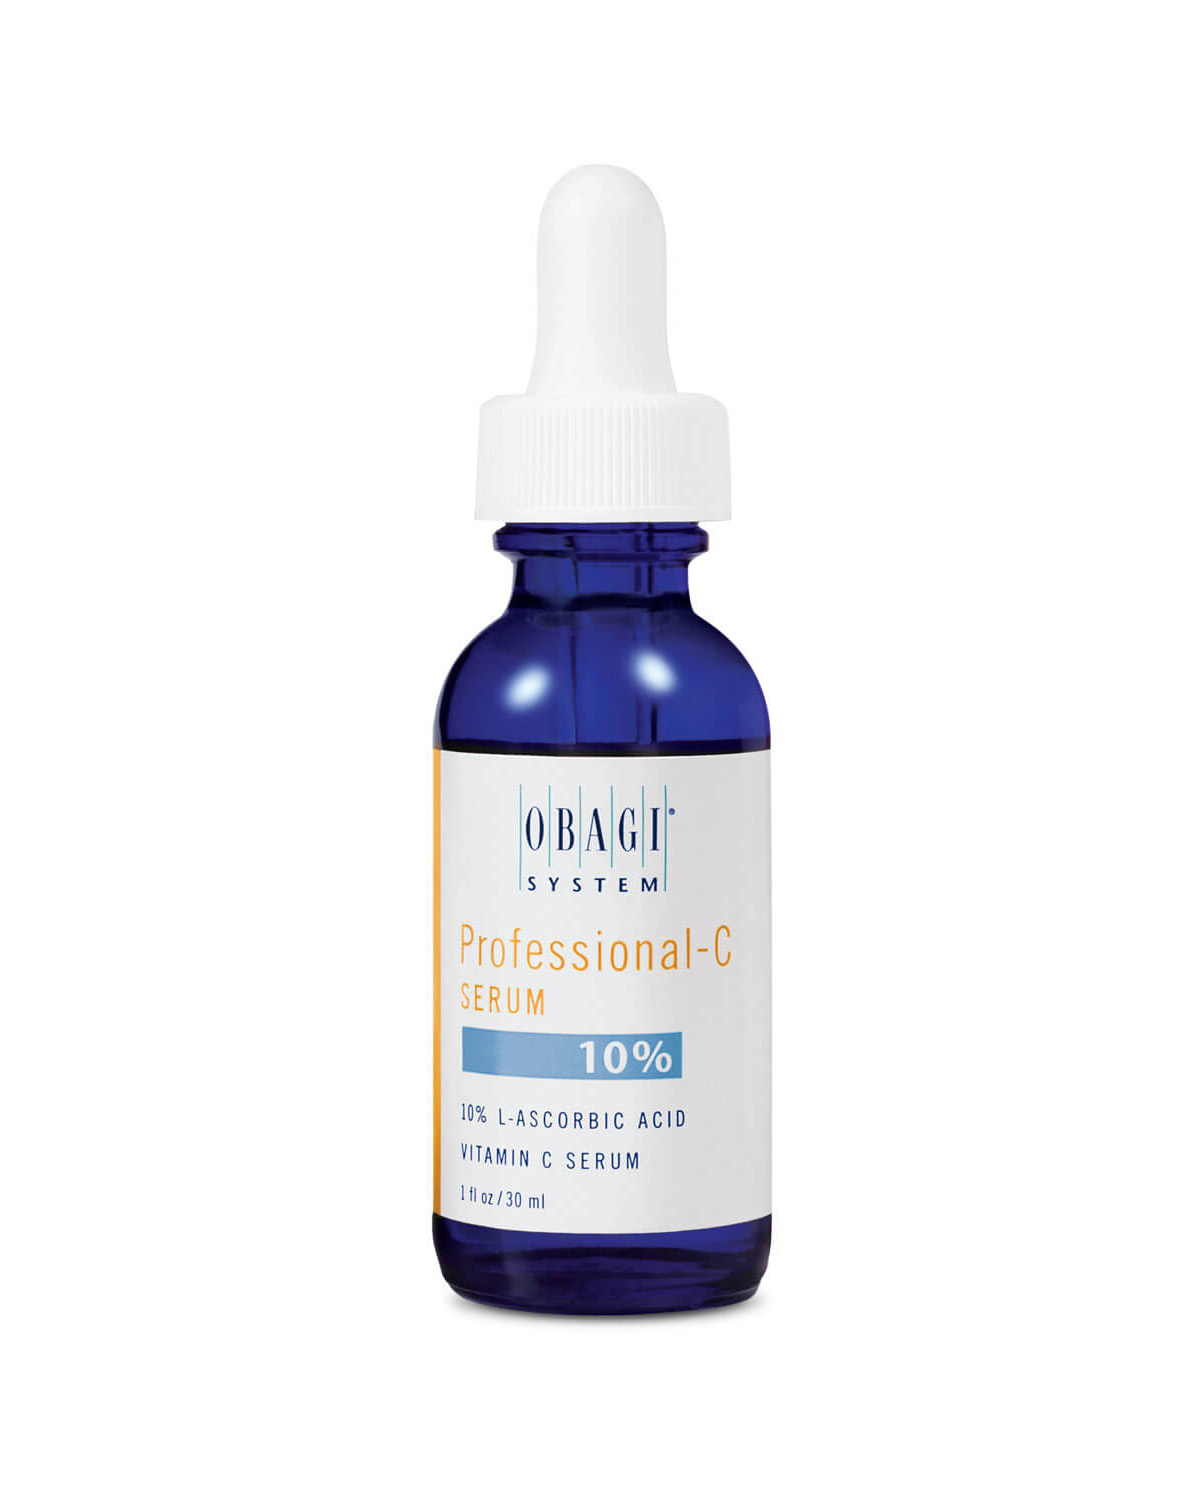 Obagi Professional-C Serum 10 percent